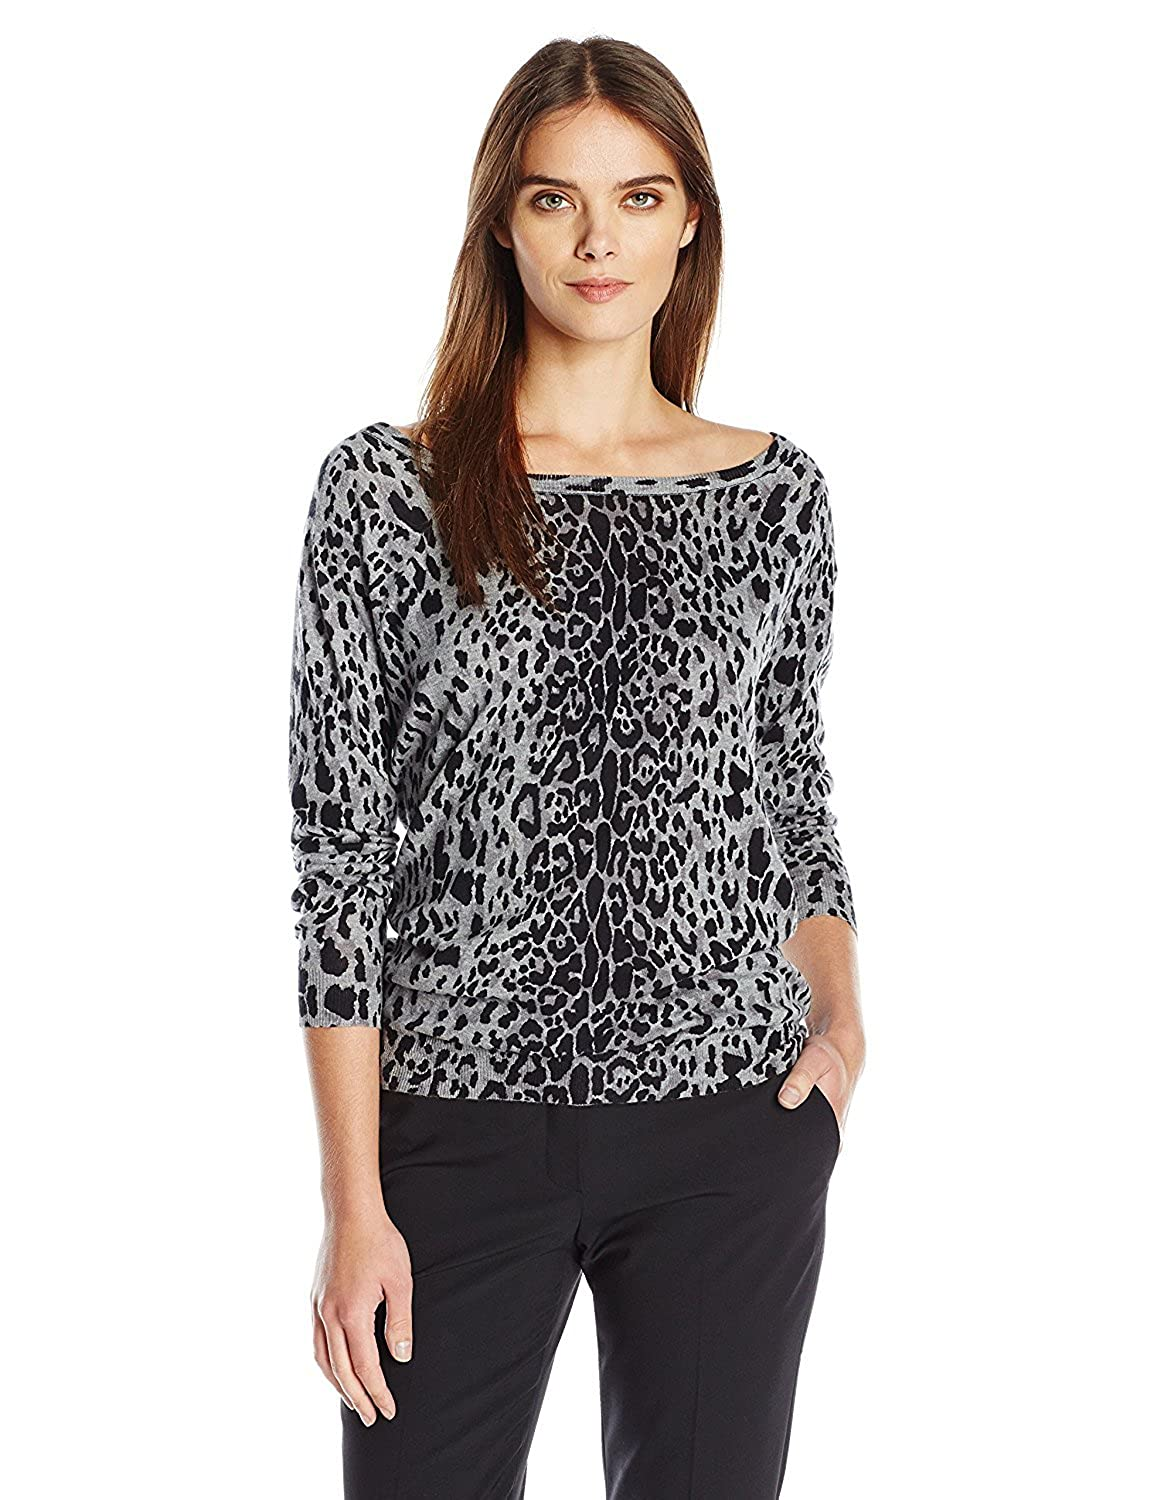 Tracy Reese Women's Pullover Charcoal Animal Small [並行輸入品] B075CJMNBS